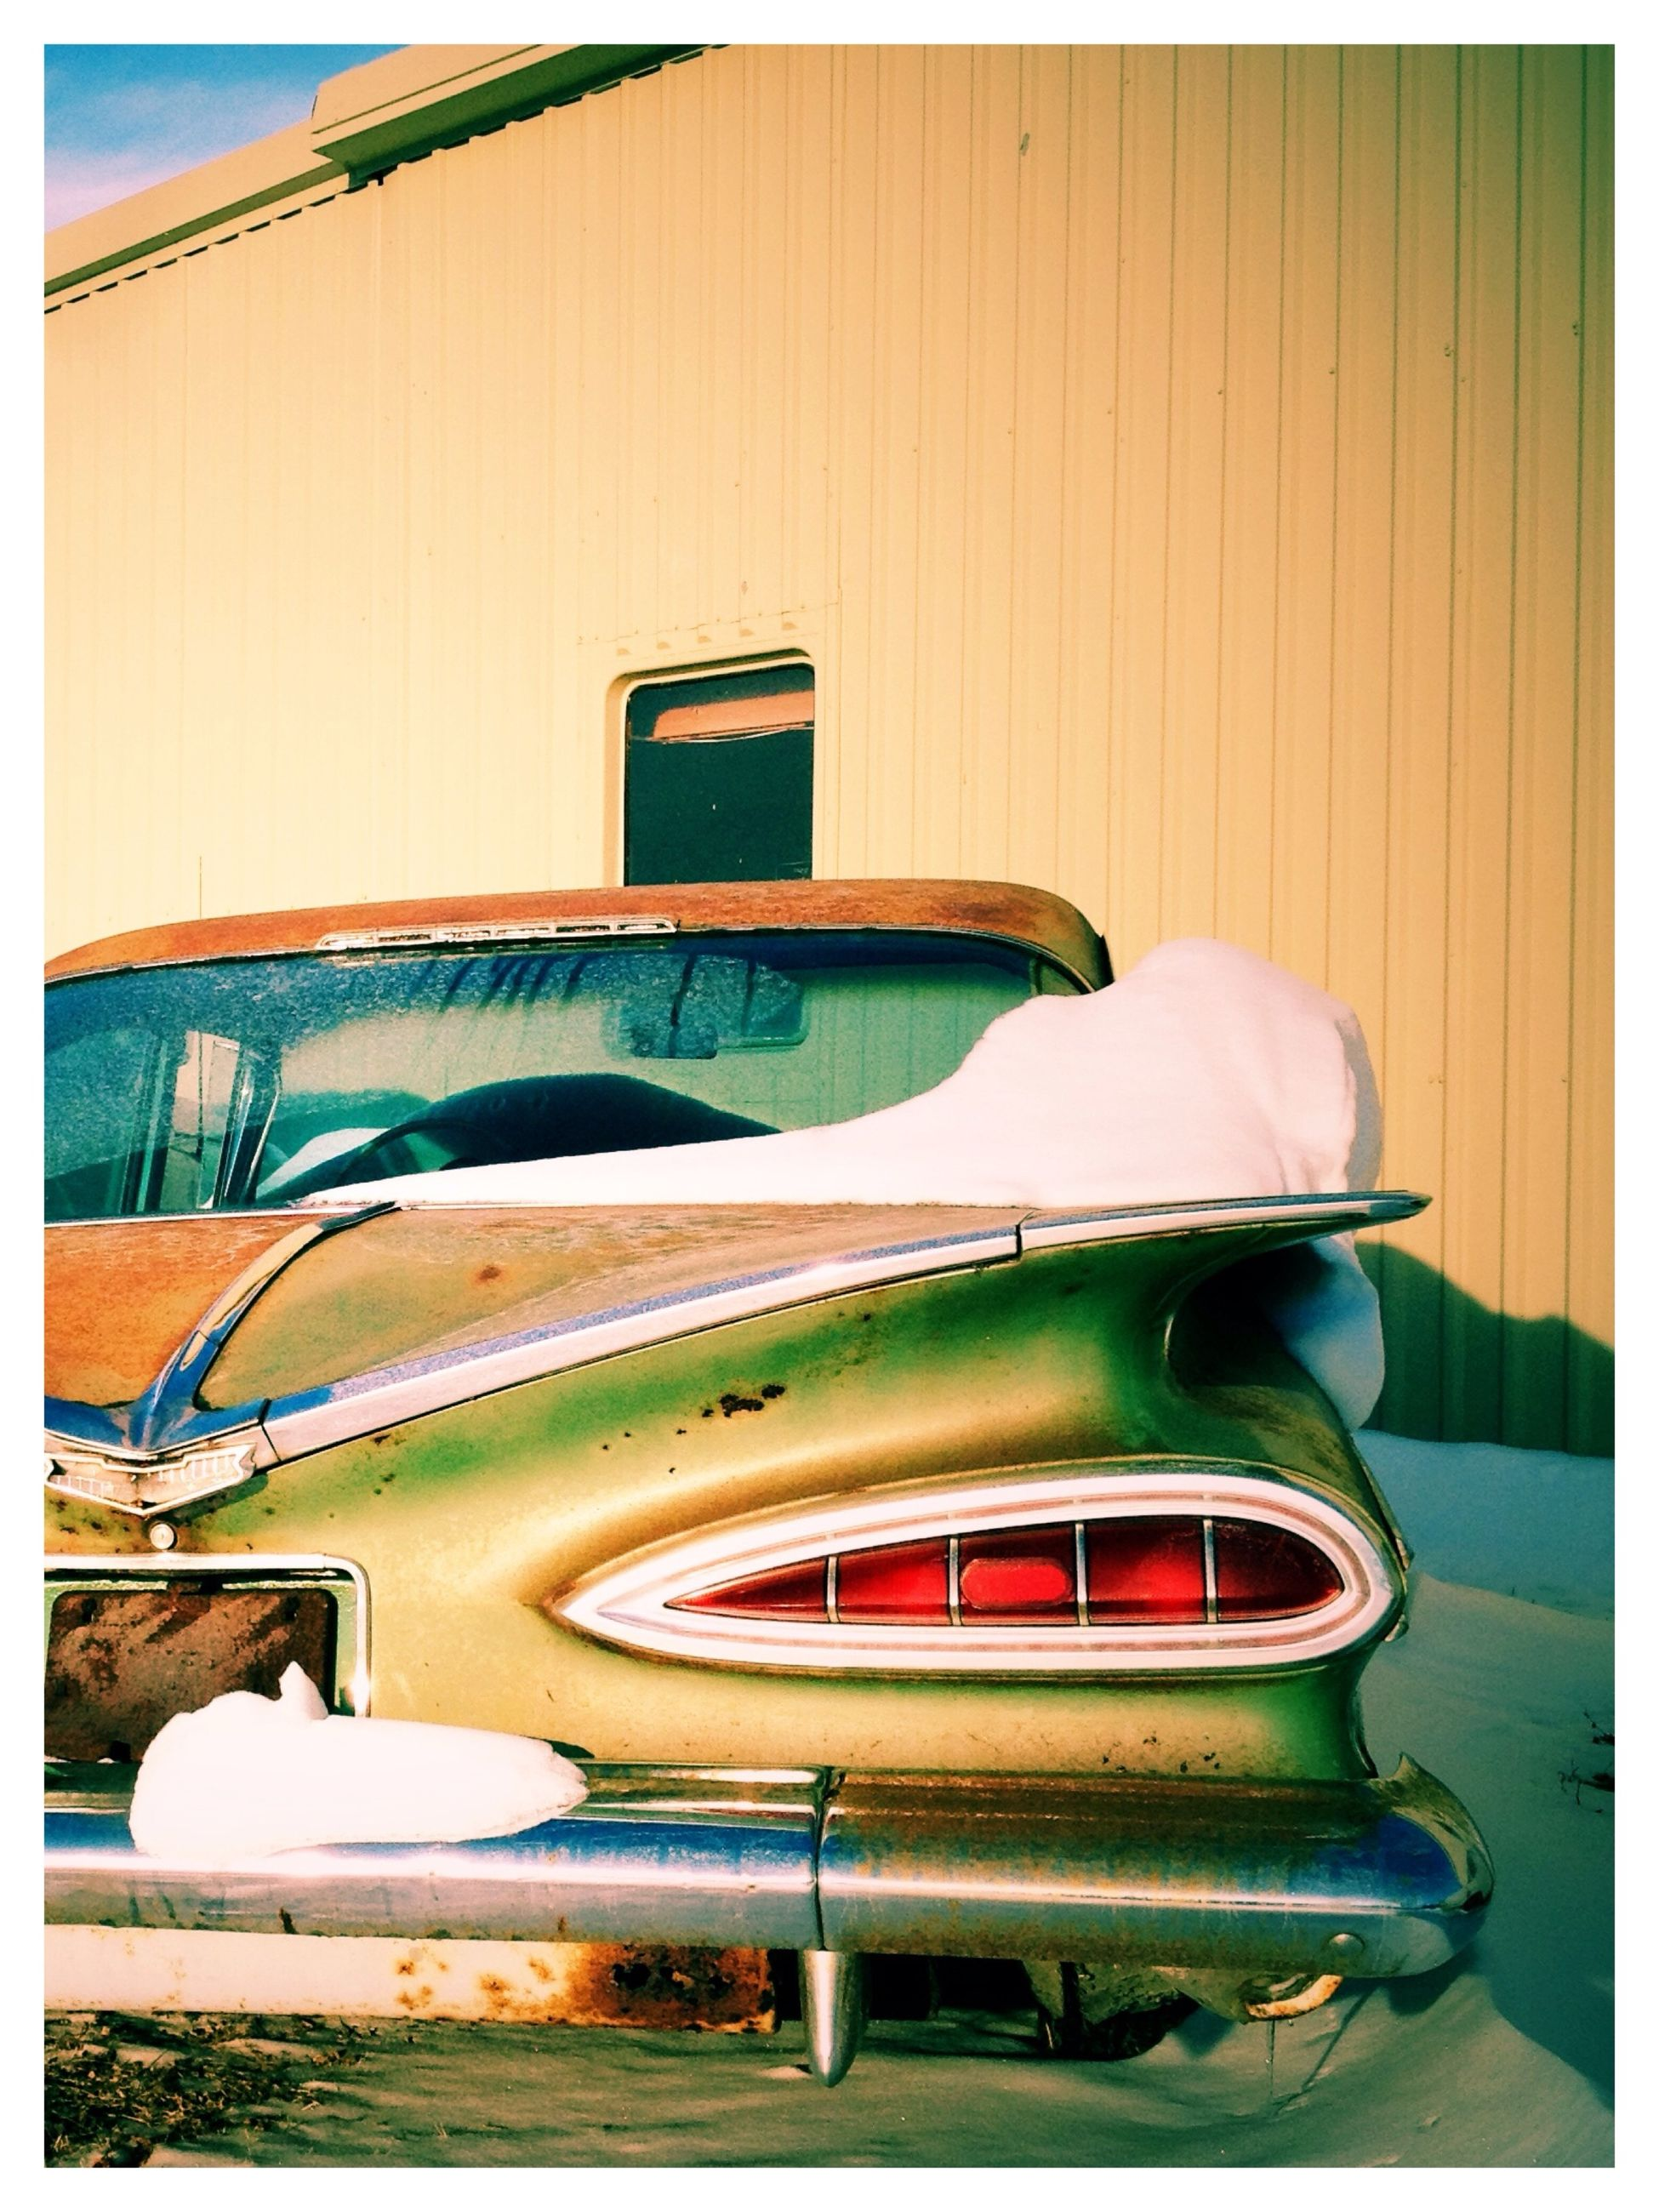 transfer print, auto post production filter, transportation, mode of transport, land vehicle, car, architecture, built structure, stationary, building exterior, absence, day, no people, parked, outdoors, empty, retro styled, old-fashioned, street, parking